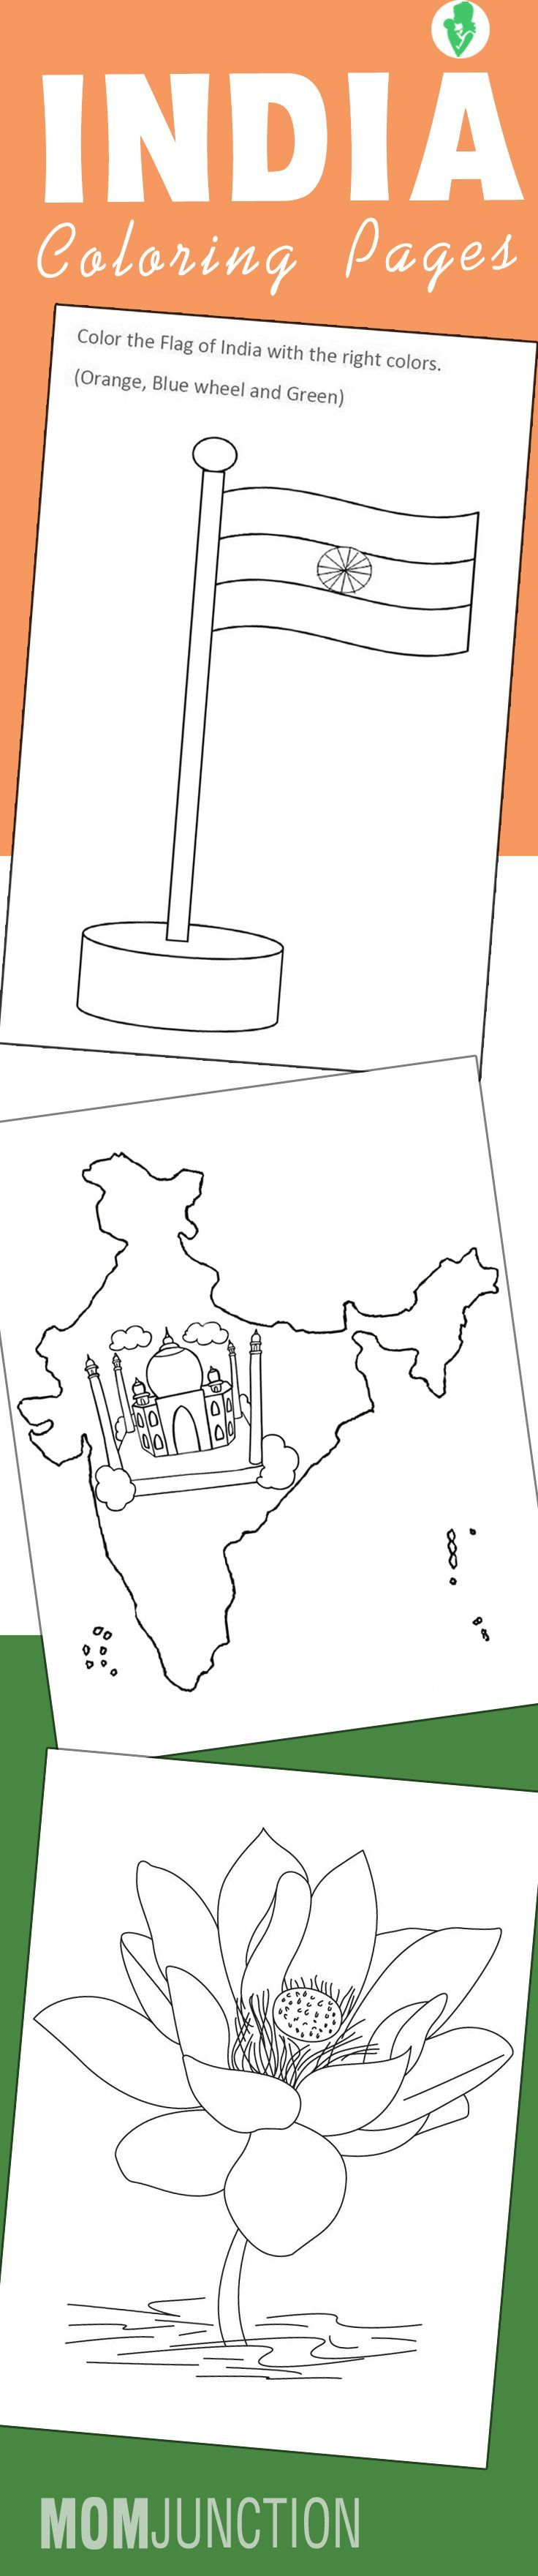 238 best ideas about india china mayans greeks studied for Ancient india coloring pages